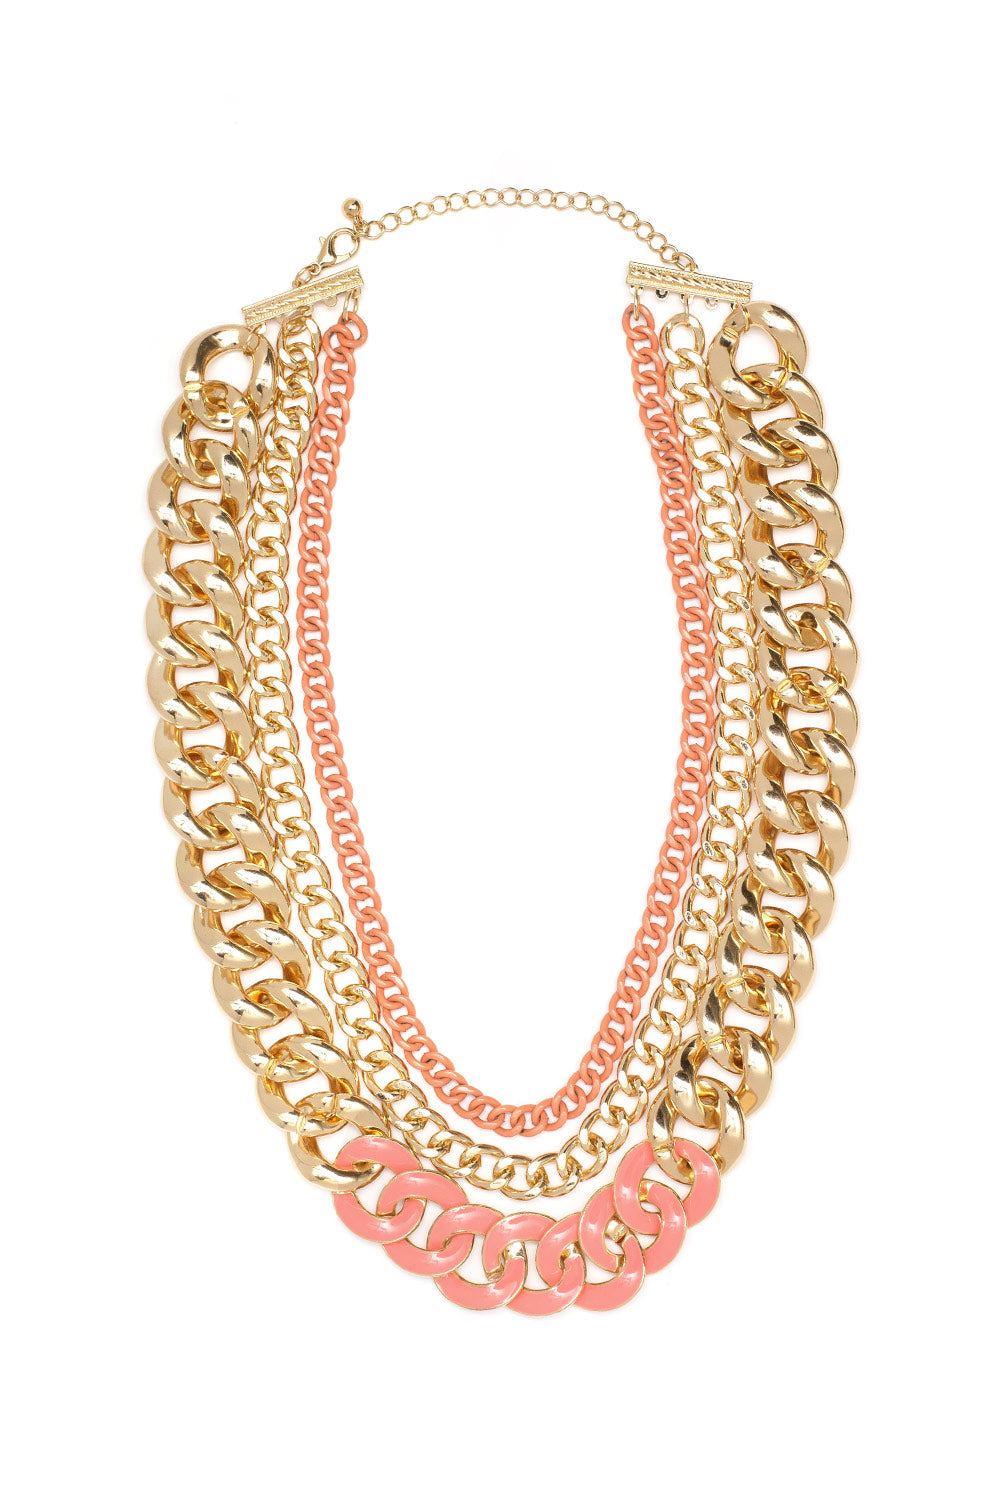 Type 3 Peachy Keen Necklace